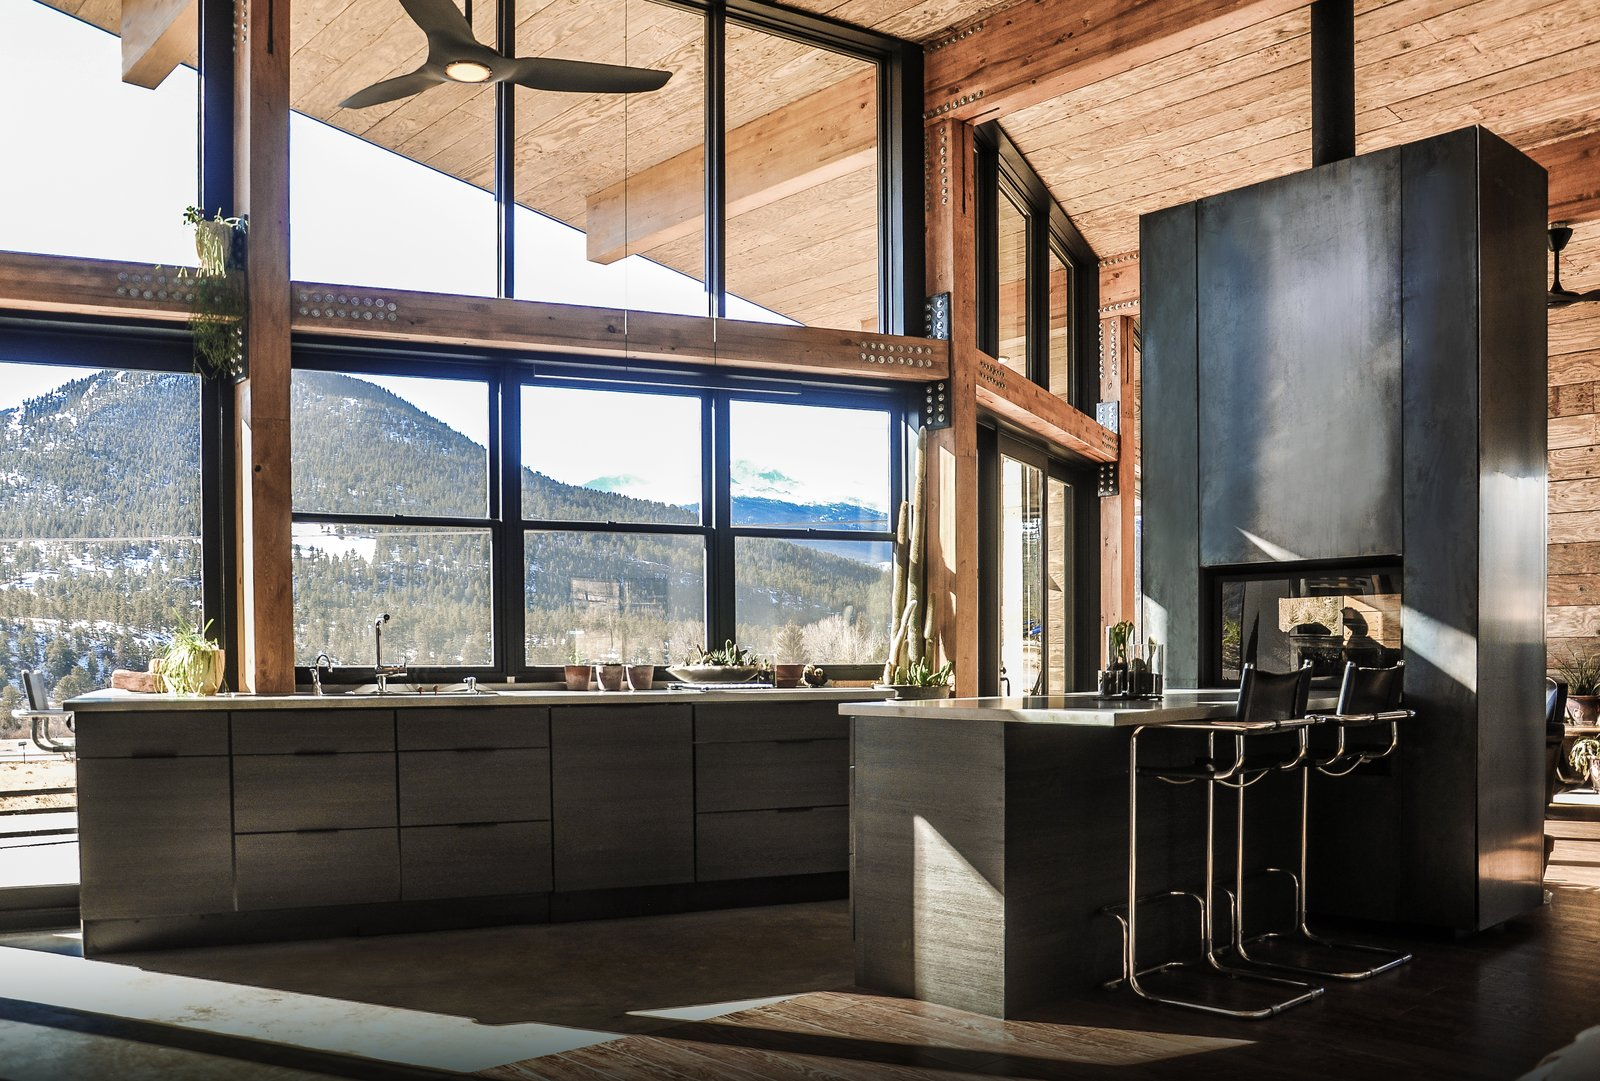 Kitchen, Refrigerator, Microwave, Cooktops, Wood, Dishwasher, Ceiling, Metal, Dark Hardwood, Concrete, Concrete, Range, Wall Oven, Pendant, Concrete, Accent, and Drop In The warm industrial kitchen celebrates views of Rocky Mountain National Park beyond. A see-through, steel fireplace becomes a glowing beacon that warms the kitchen and living room at the heart of the home.   Best Kitchen Concrete Cooktops Ceiling Dark Hardwood Wall Oven Microwave Concrete Photos from Estes Park Residence